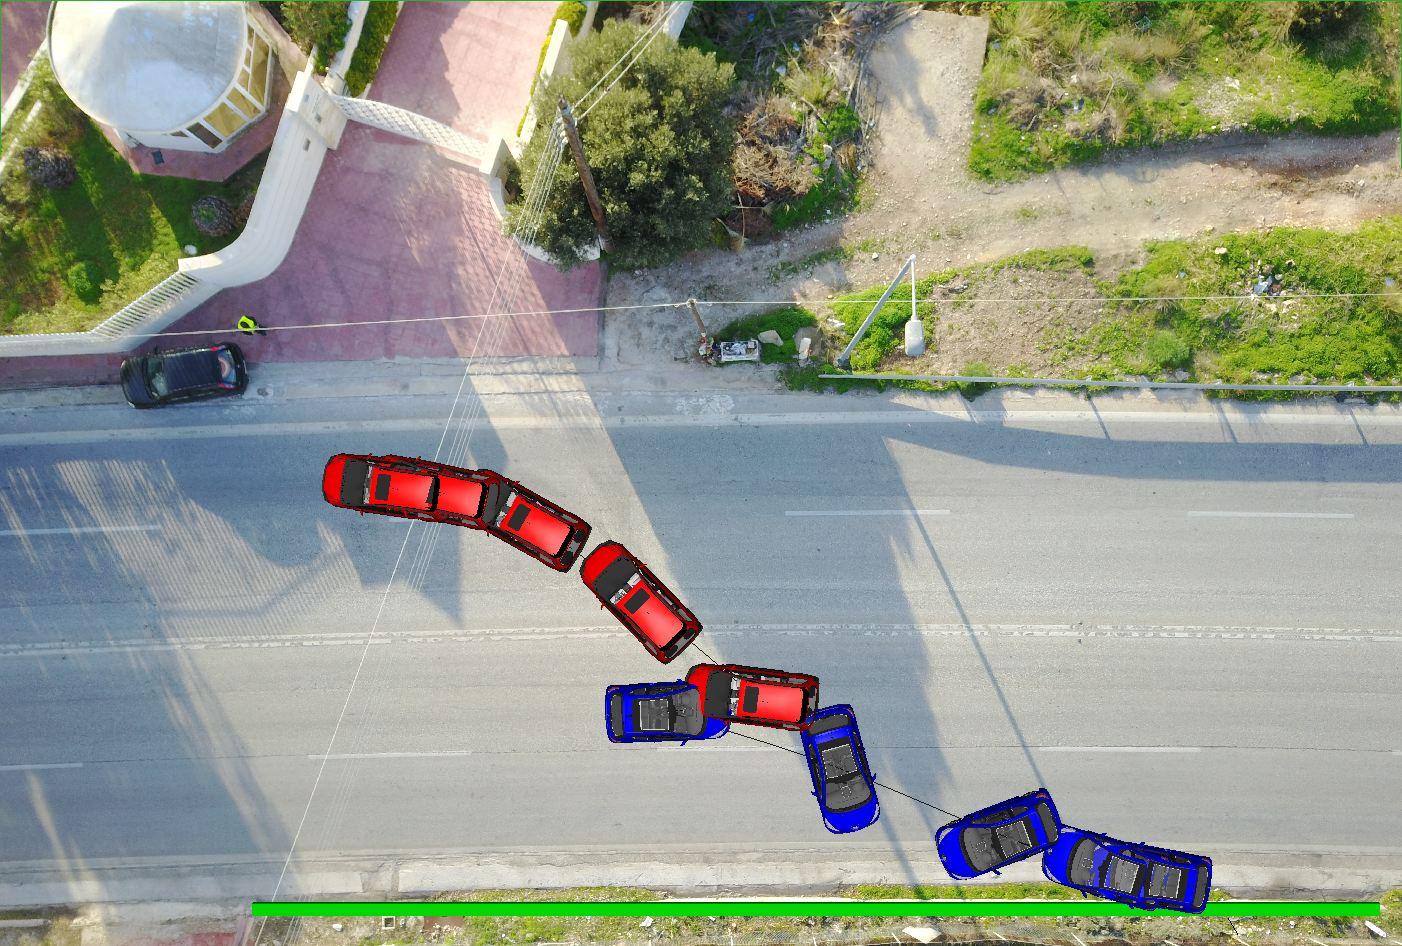 Accident simulation using the special software program Pc - Crash in aerial photography